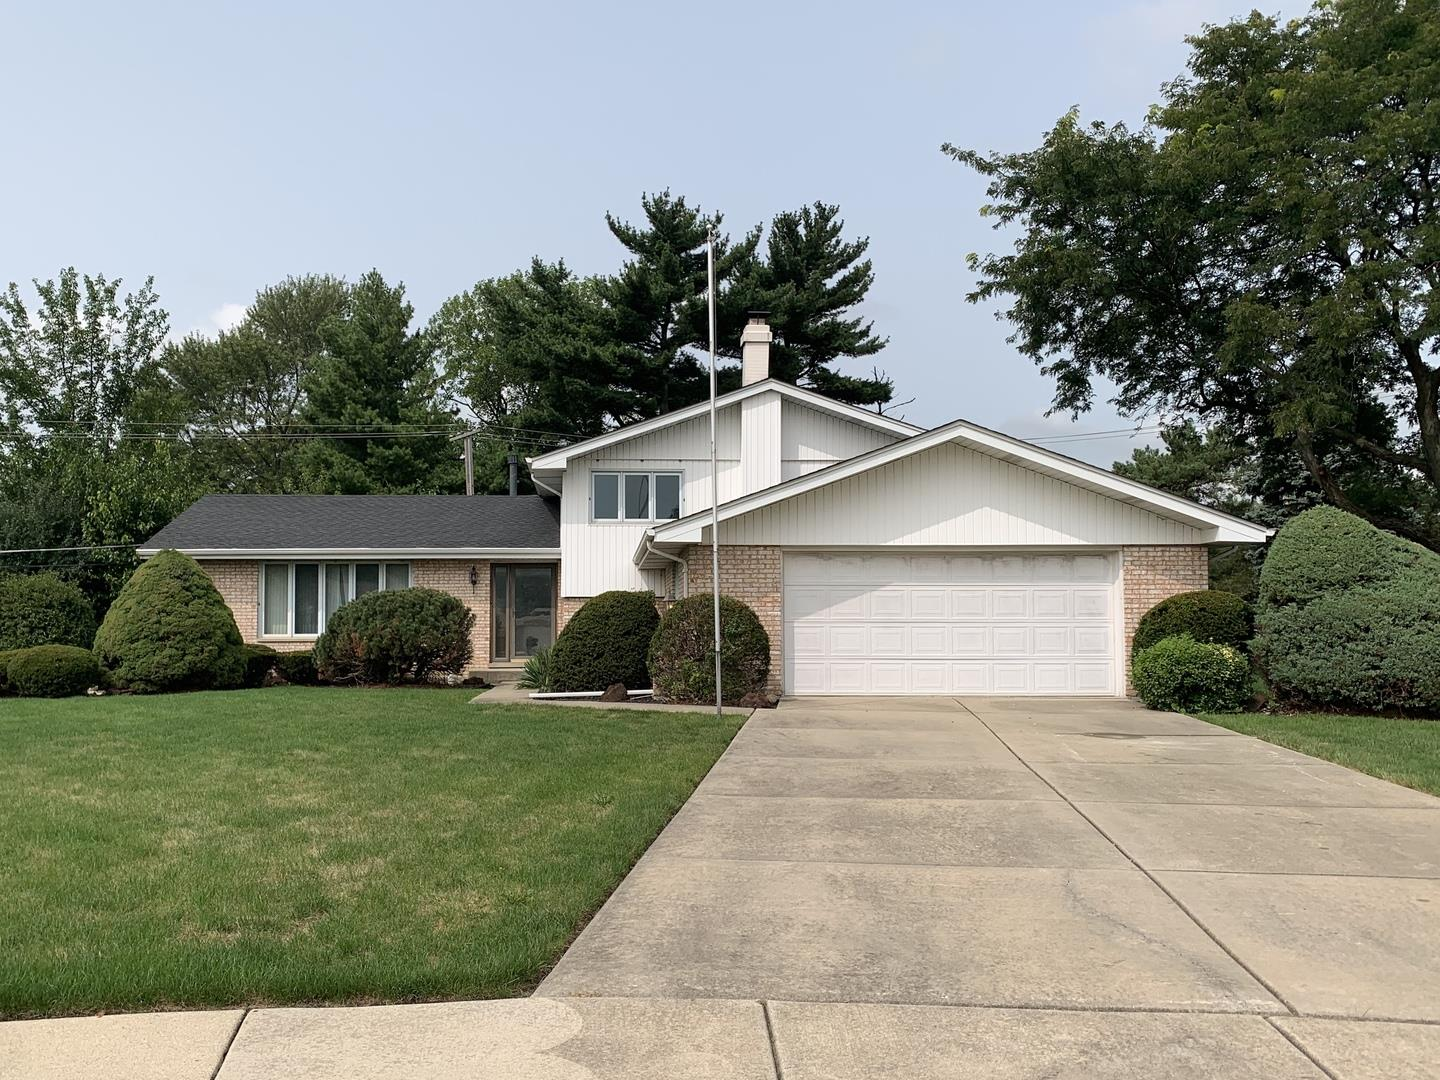 14316 Maycliff Drive, Orland Park, IL 60462 - #: 10861368